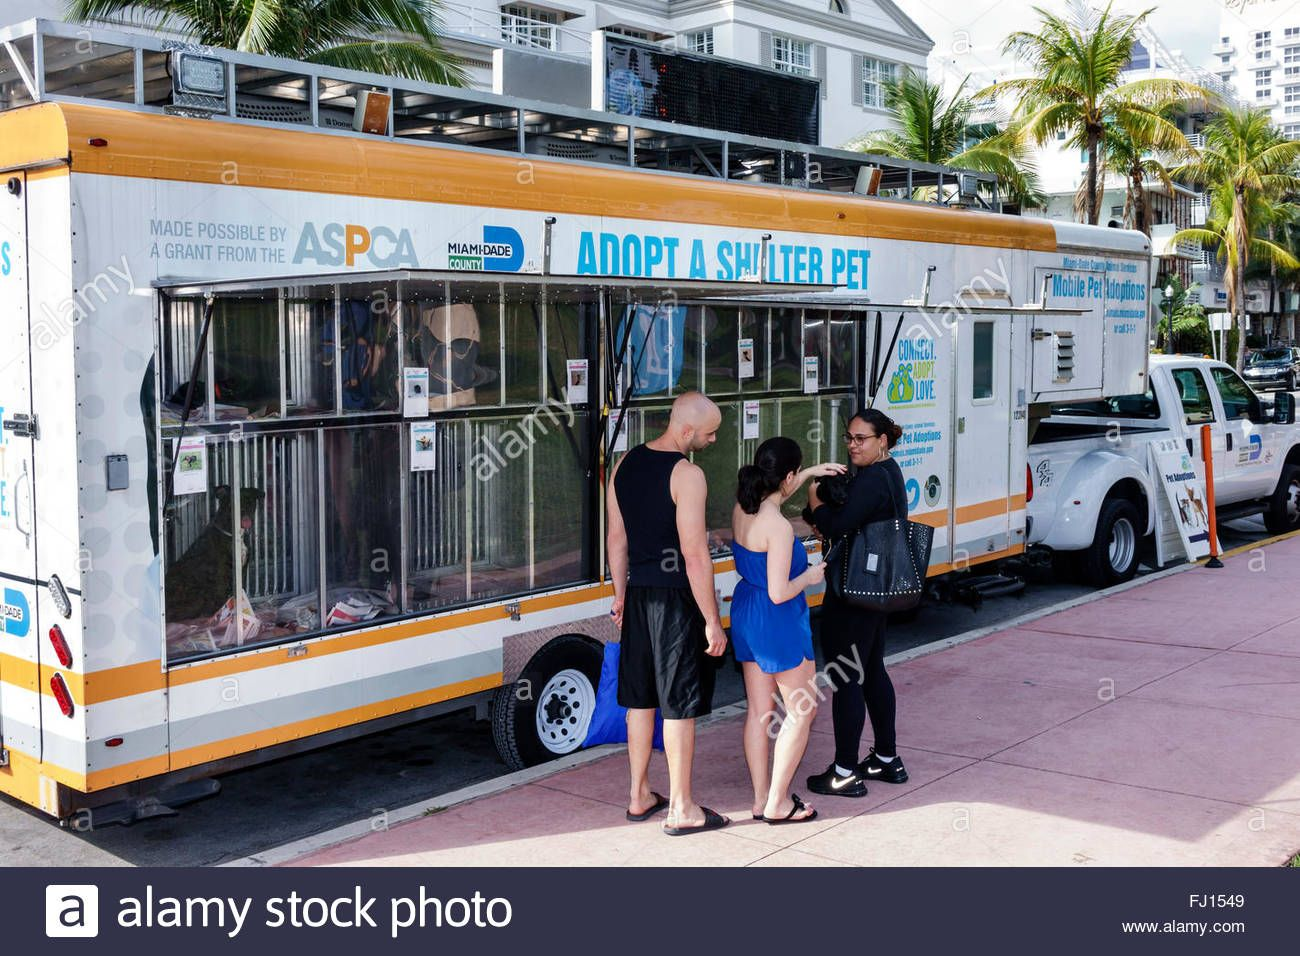 Download This Stock Image Miami Beach Florida Mobile Adopt Animal Shelter Pet Trailer Adopting Man Woman Couple Lookin Pet Trailer Animal Shelter Pet Adoption